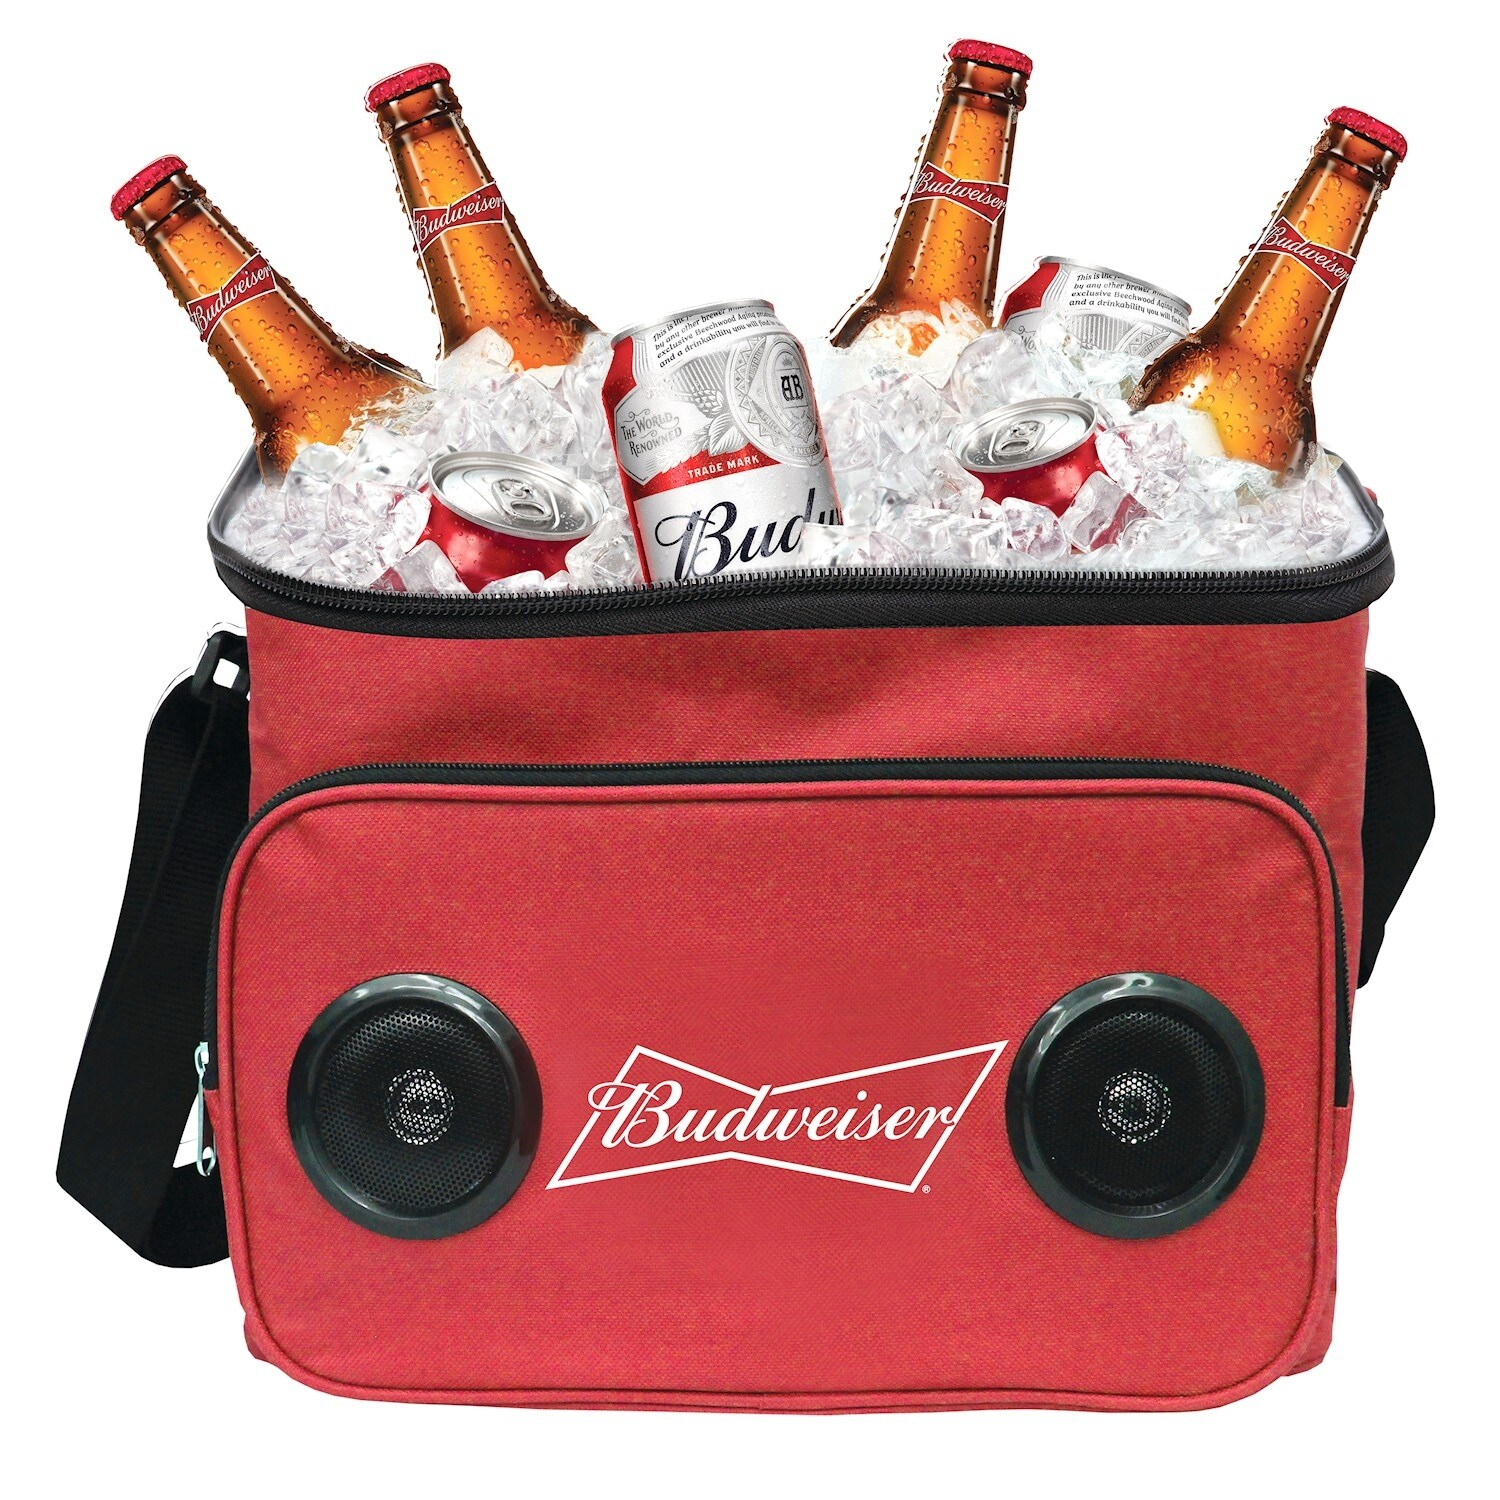 Beer Cooler Bag with Bluetooth Speaker - Insulated Blue Bud Light or Red  Budweiser Picnic Cooler with Shoulder Strap